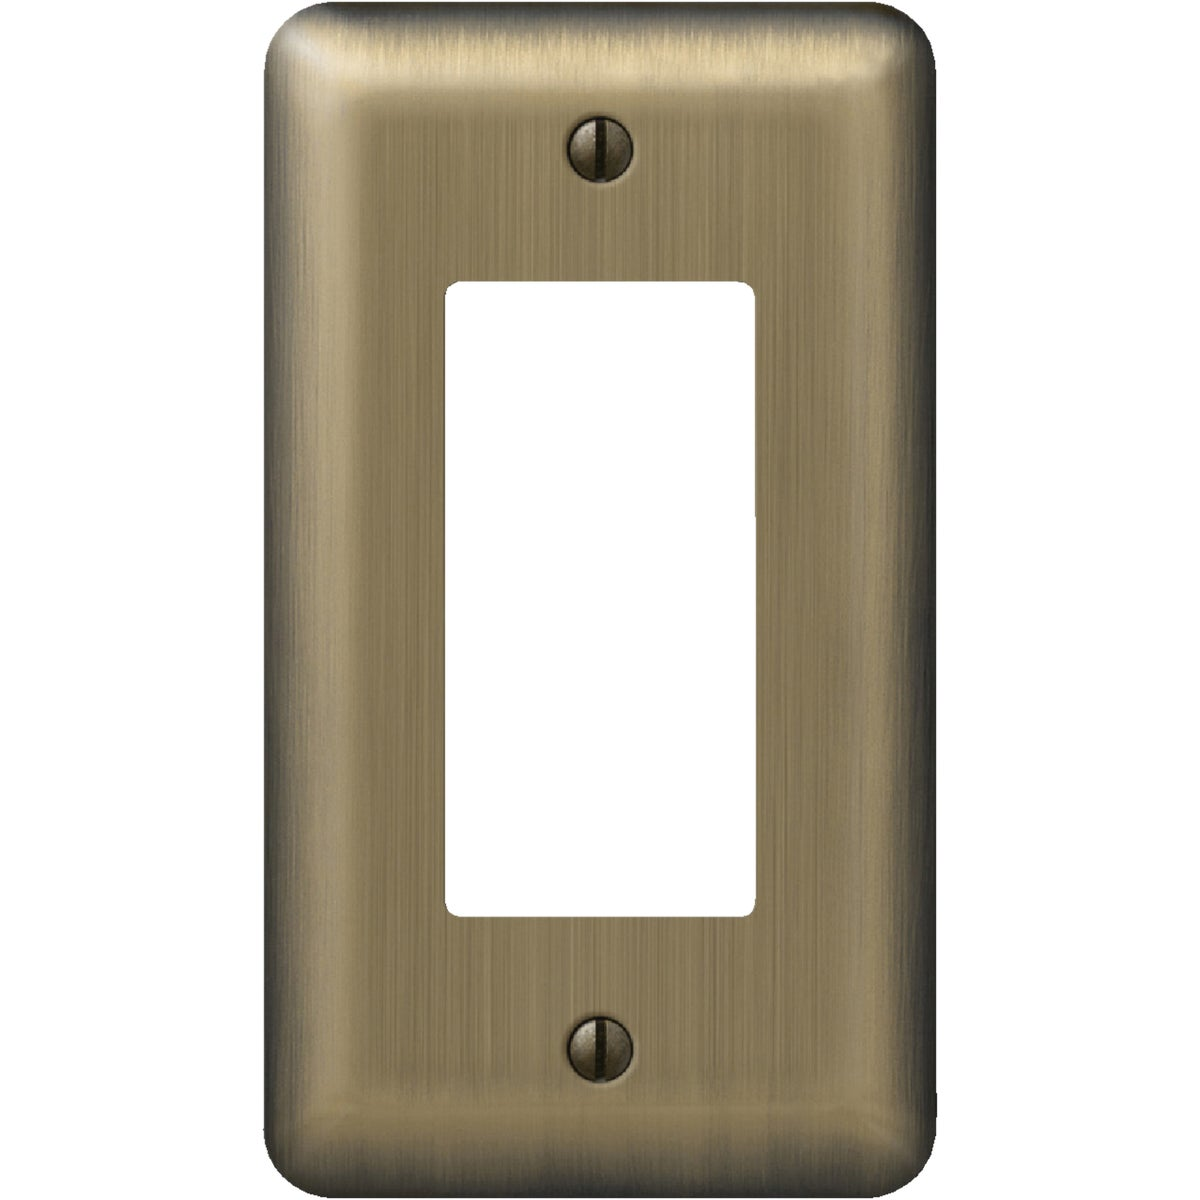 AB GFI WALL PLATE - 9AB117 by Jackson Deerfield Mf